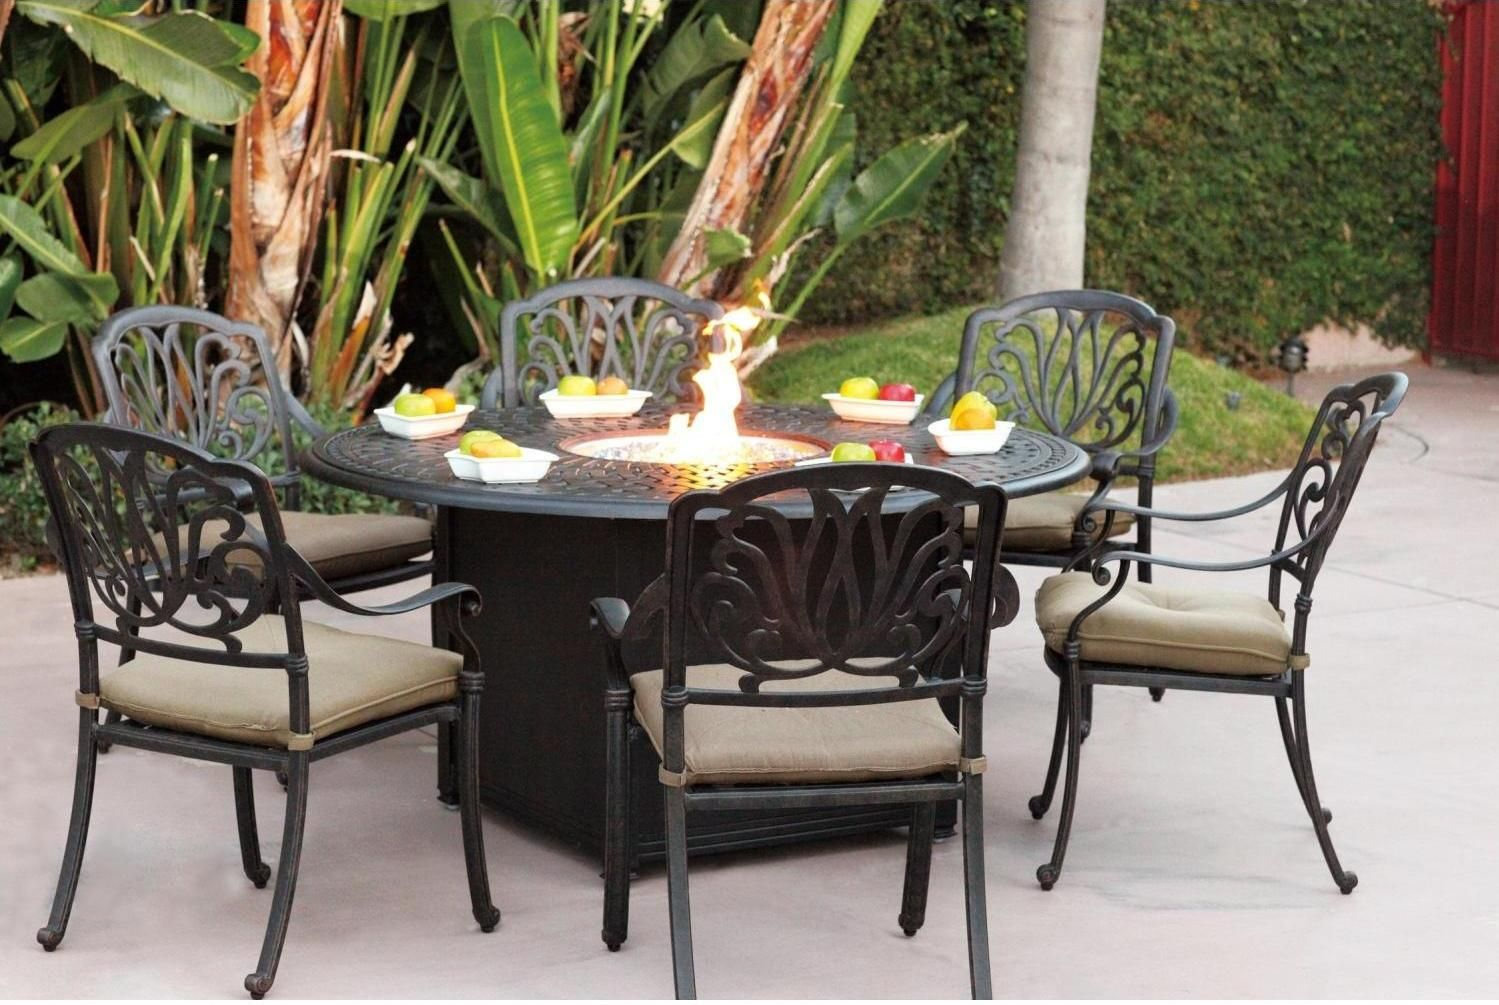 Outdoor Dining Tables With Gas Fire Pit Photo 3 Patio Furniture Fire Patio Set